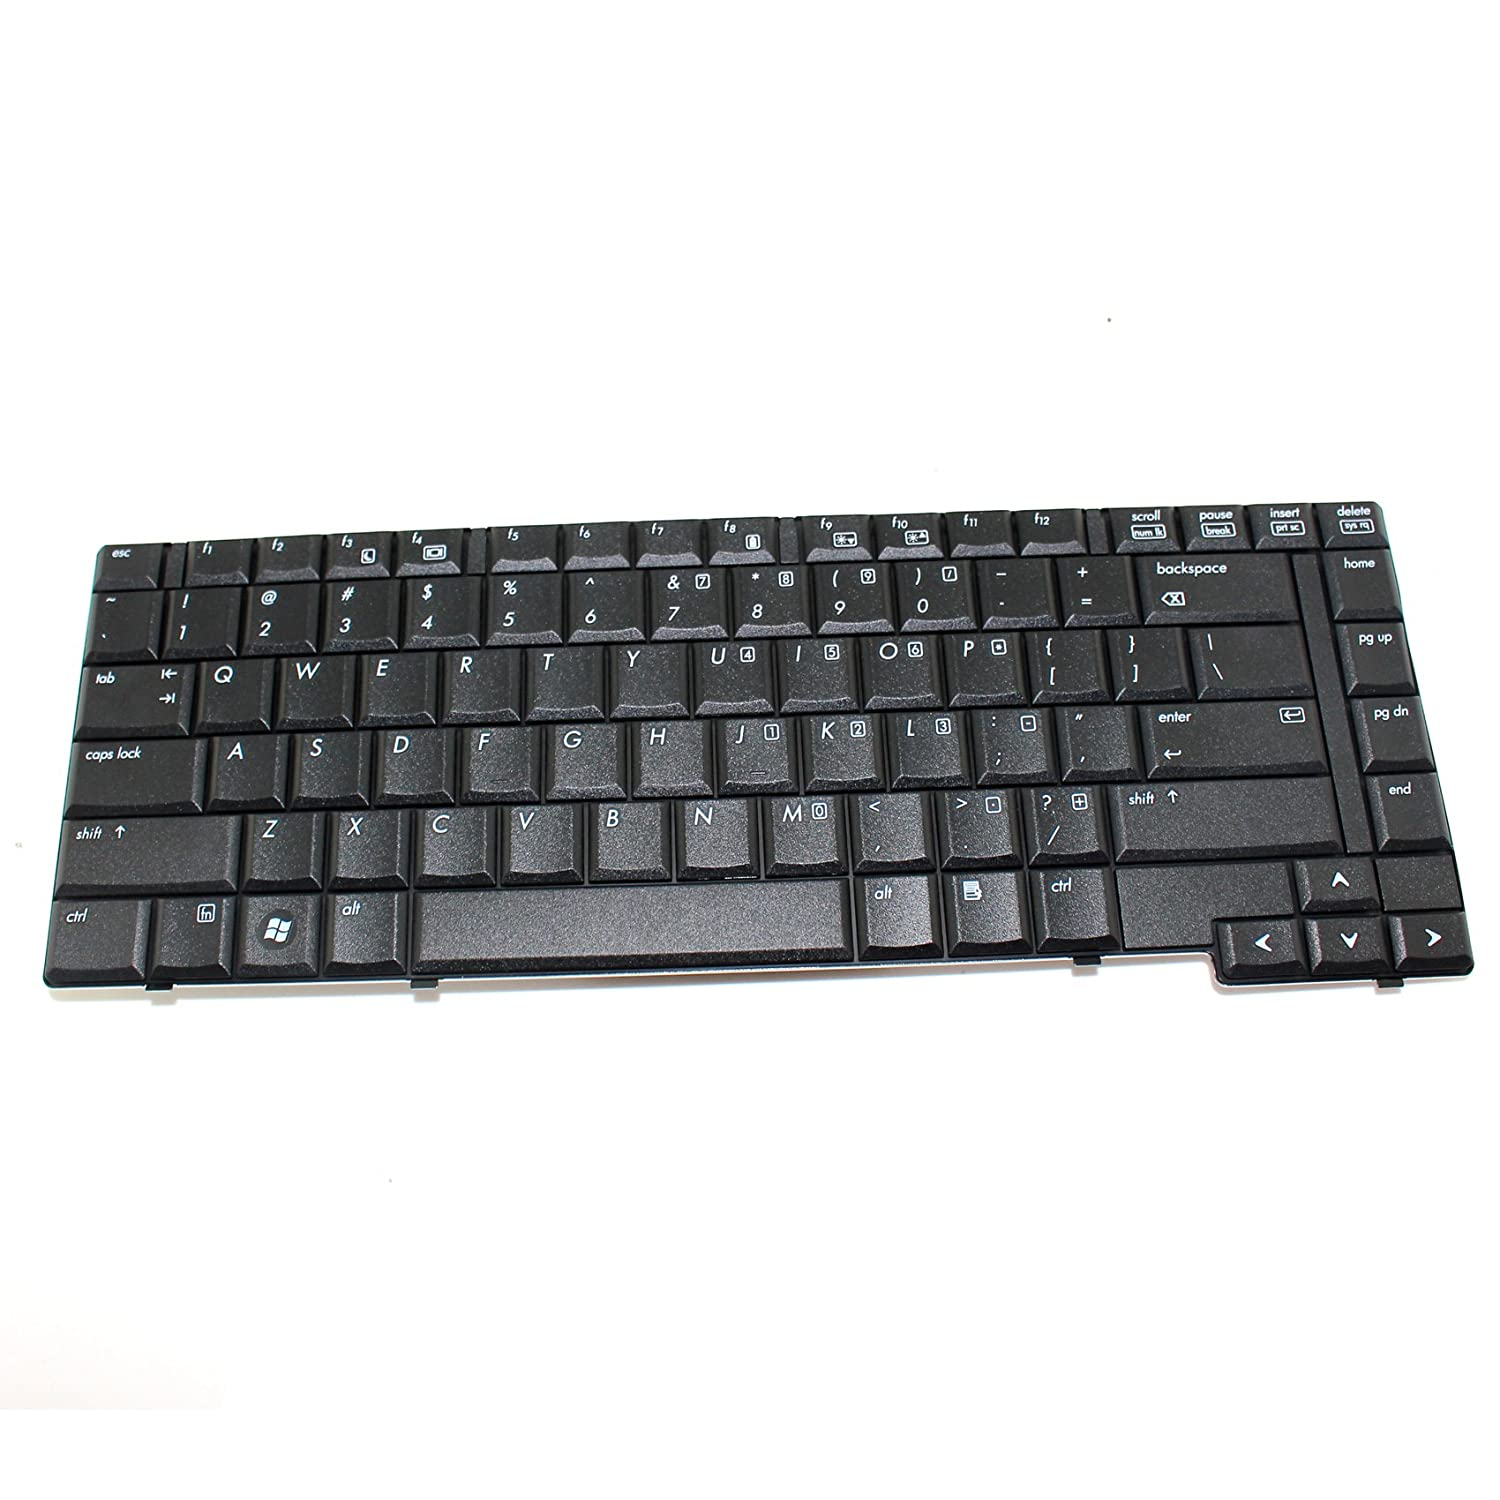 Generic New Black Laptop US Keyboard for HP Compaq 6530B 6535B Series Replacement Parts new arrival pbt keycap cherry profile double shot 106keys 3494 keycaps for mx switch mechanical keyboard